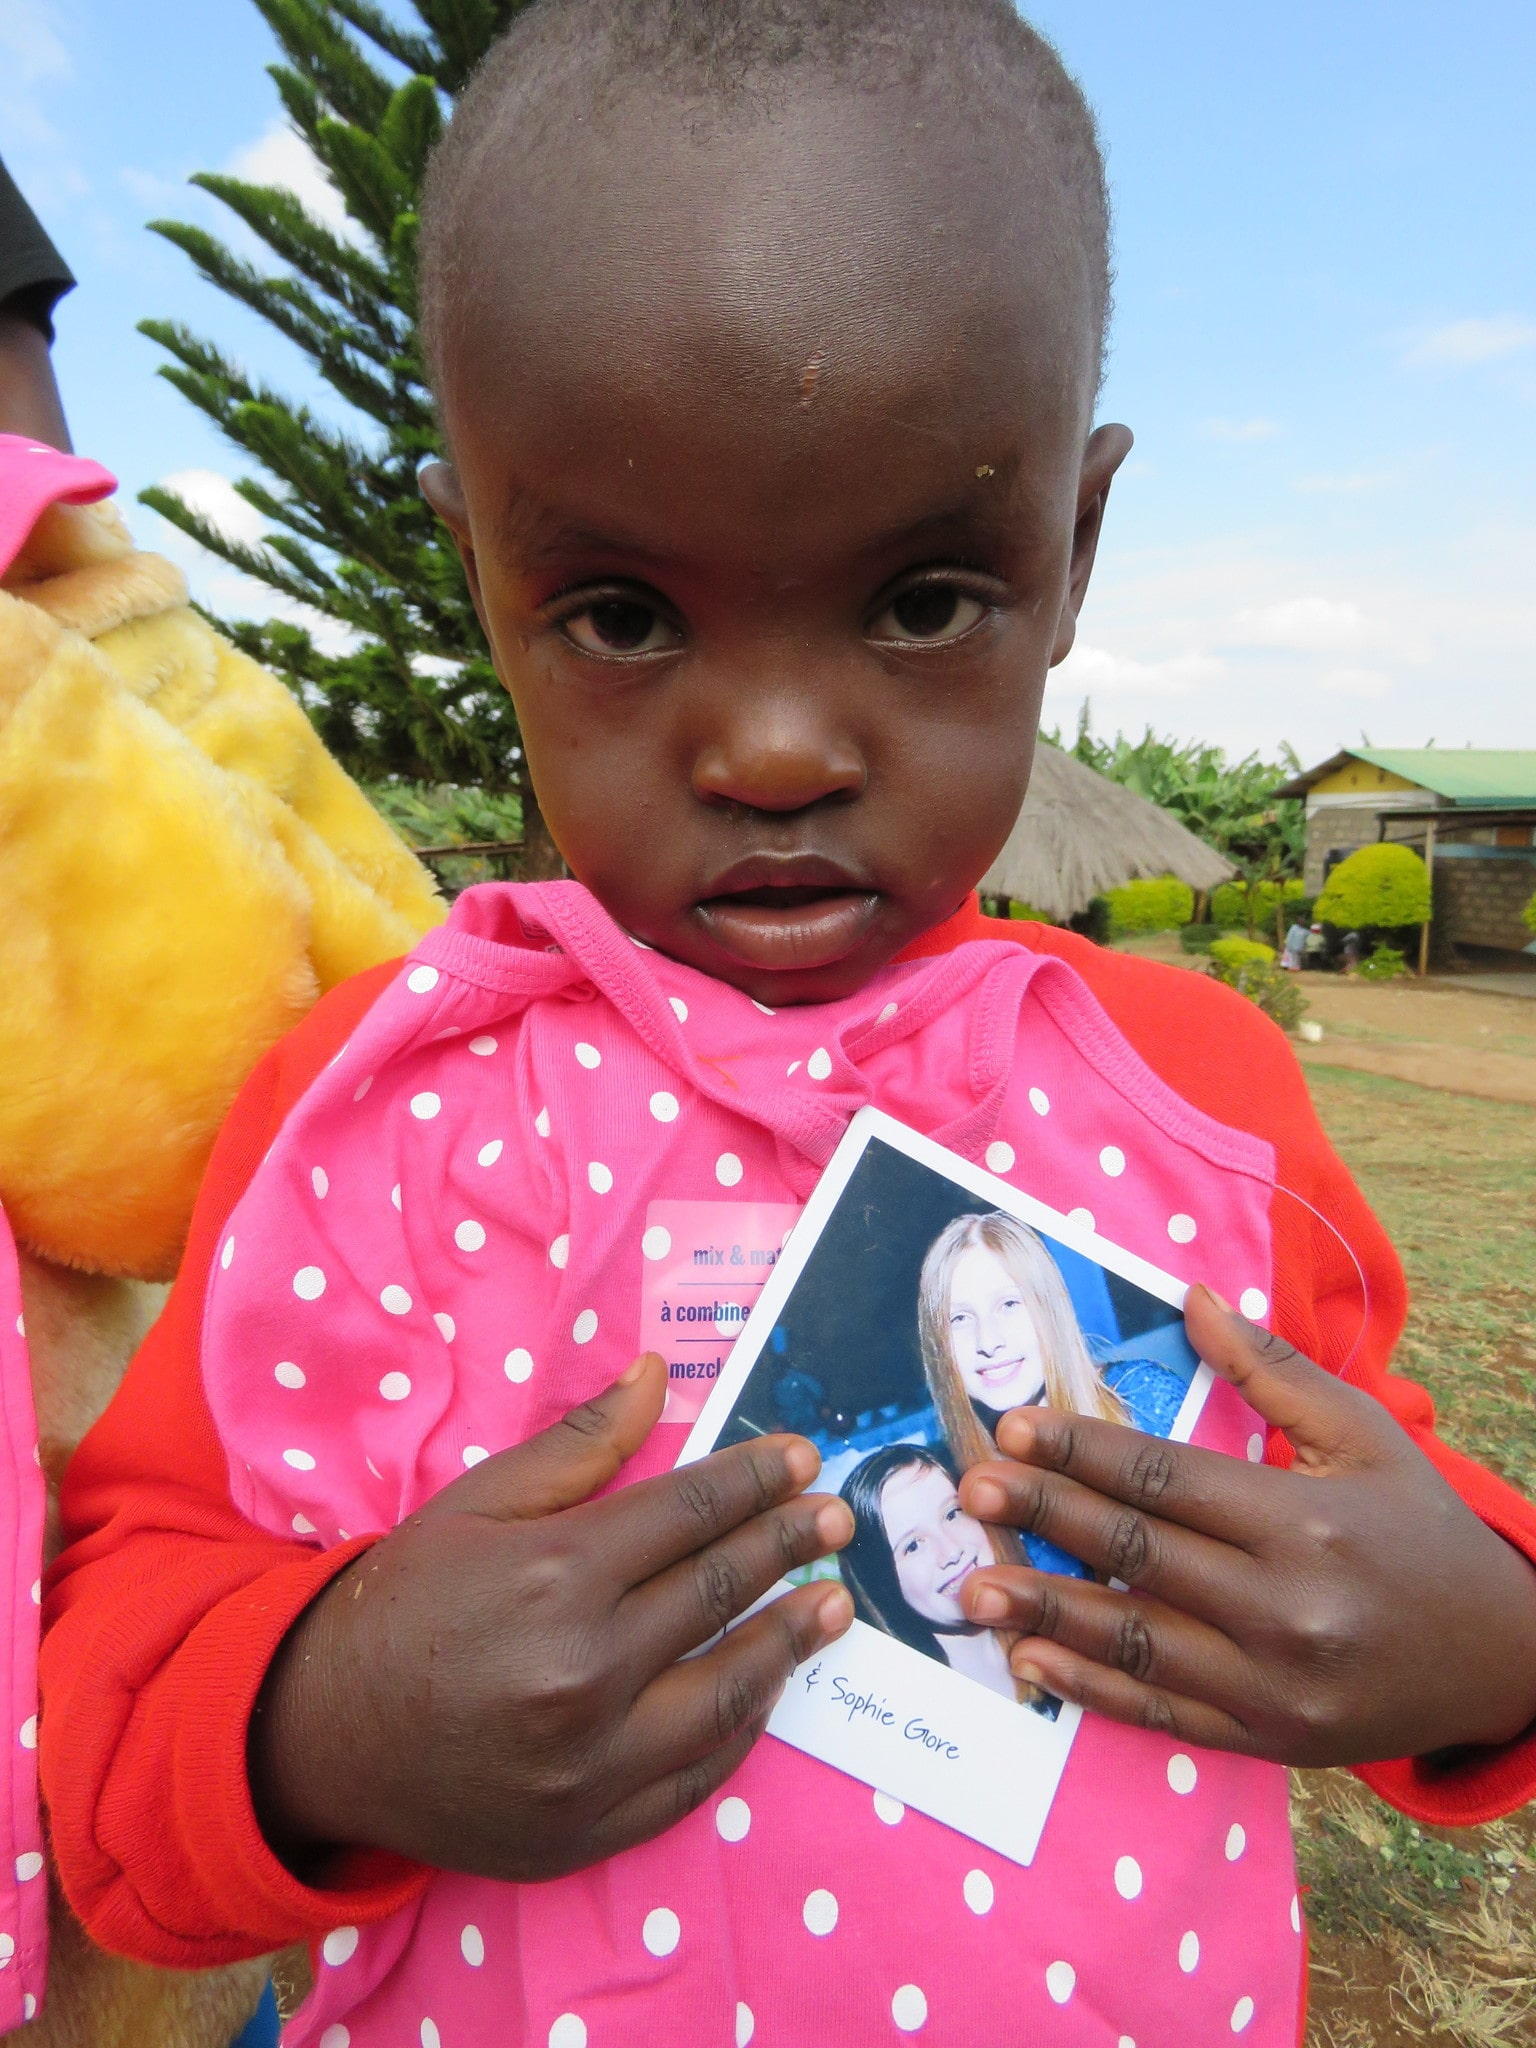 This little orphaned girl is holding our picture - and behind that is a pair of pajamas we donated for her to wear.